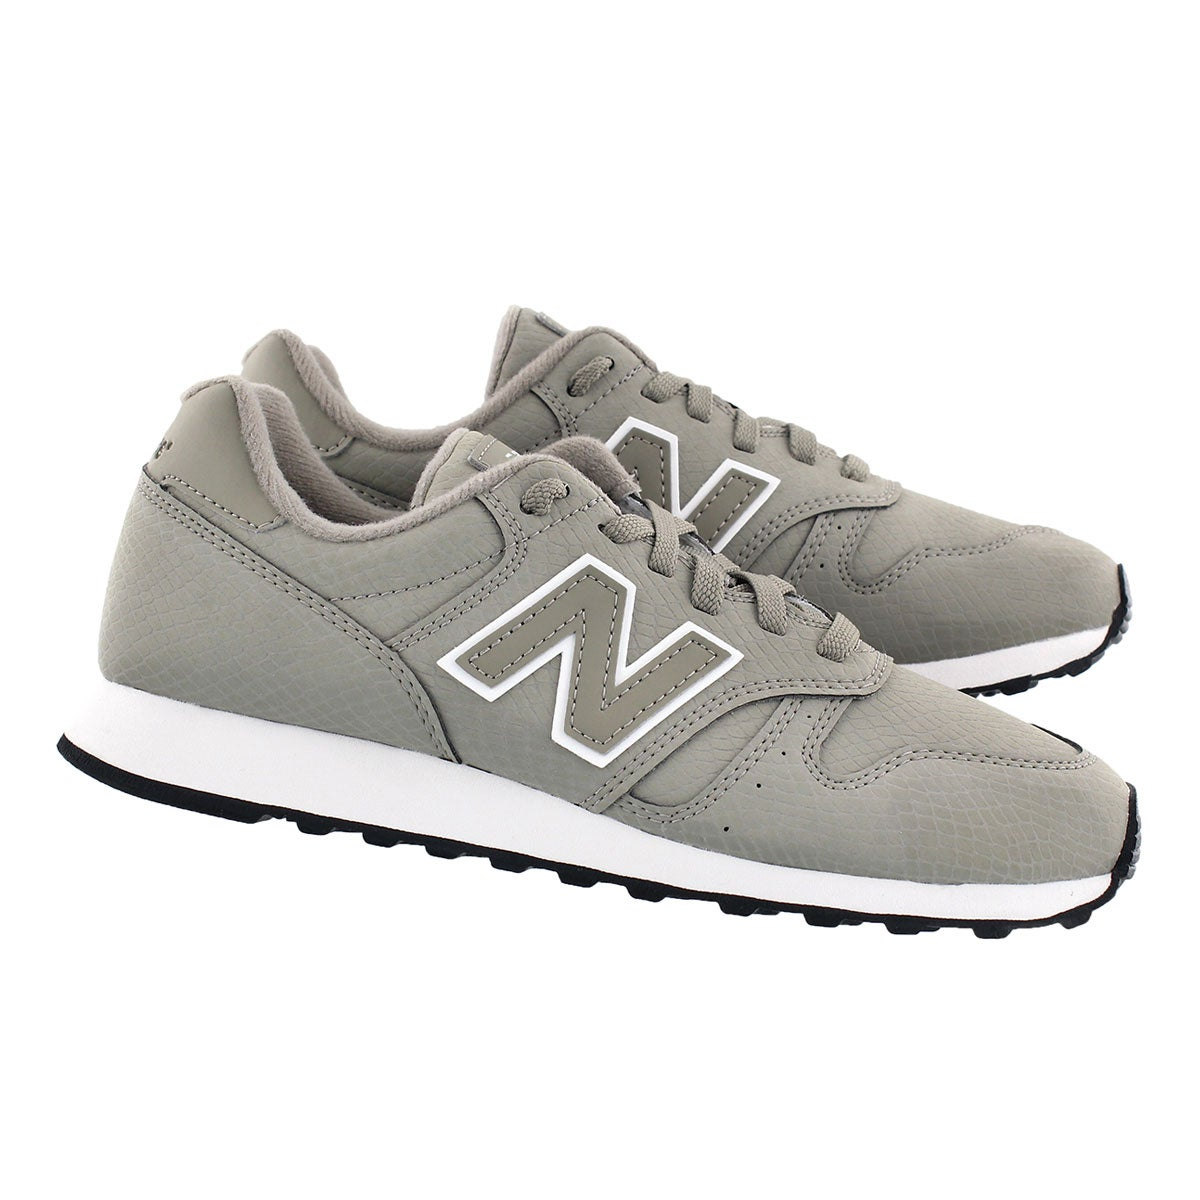 Lds 373 grey lace up running shoe